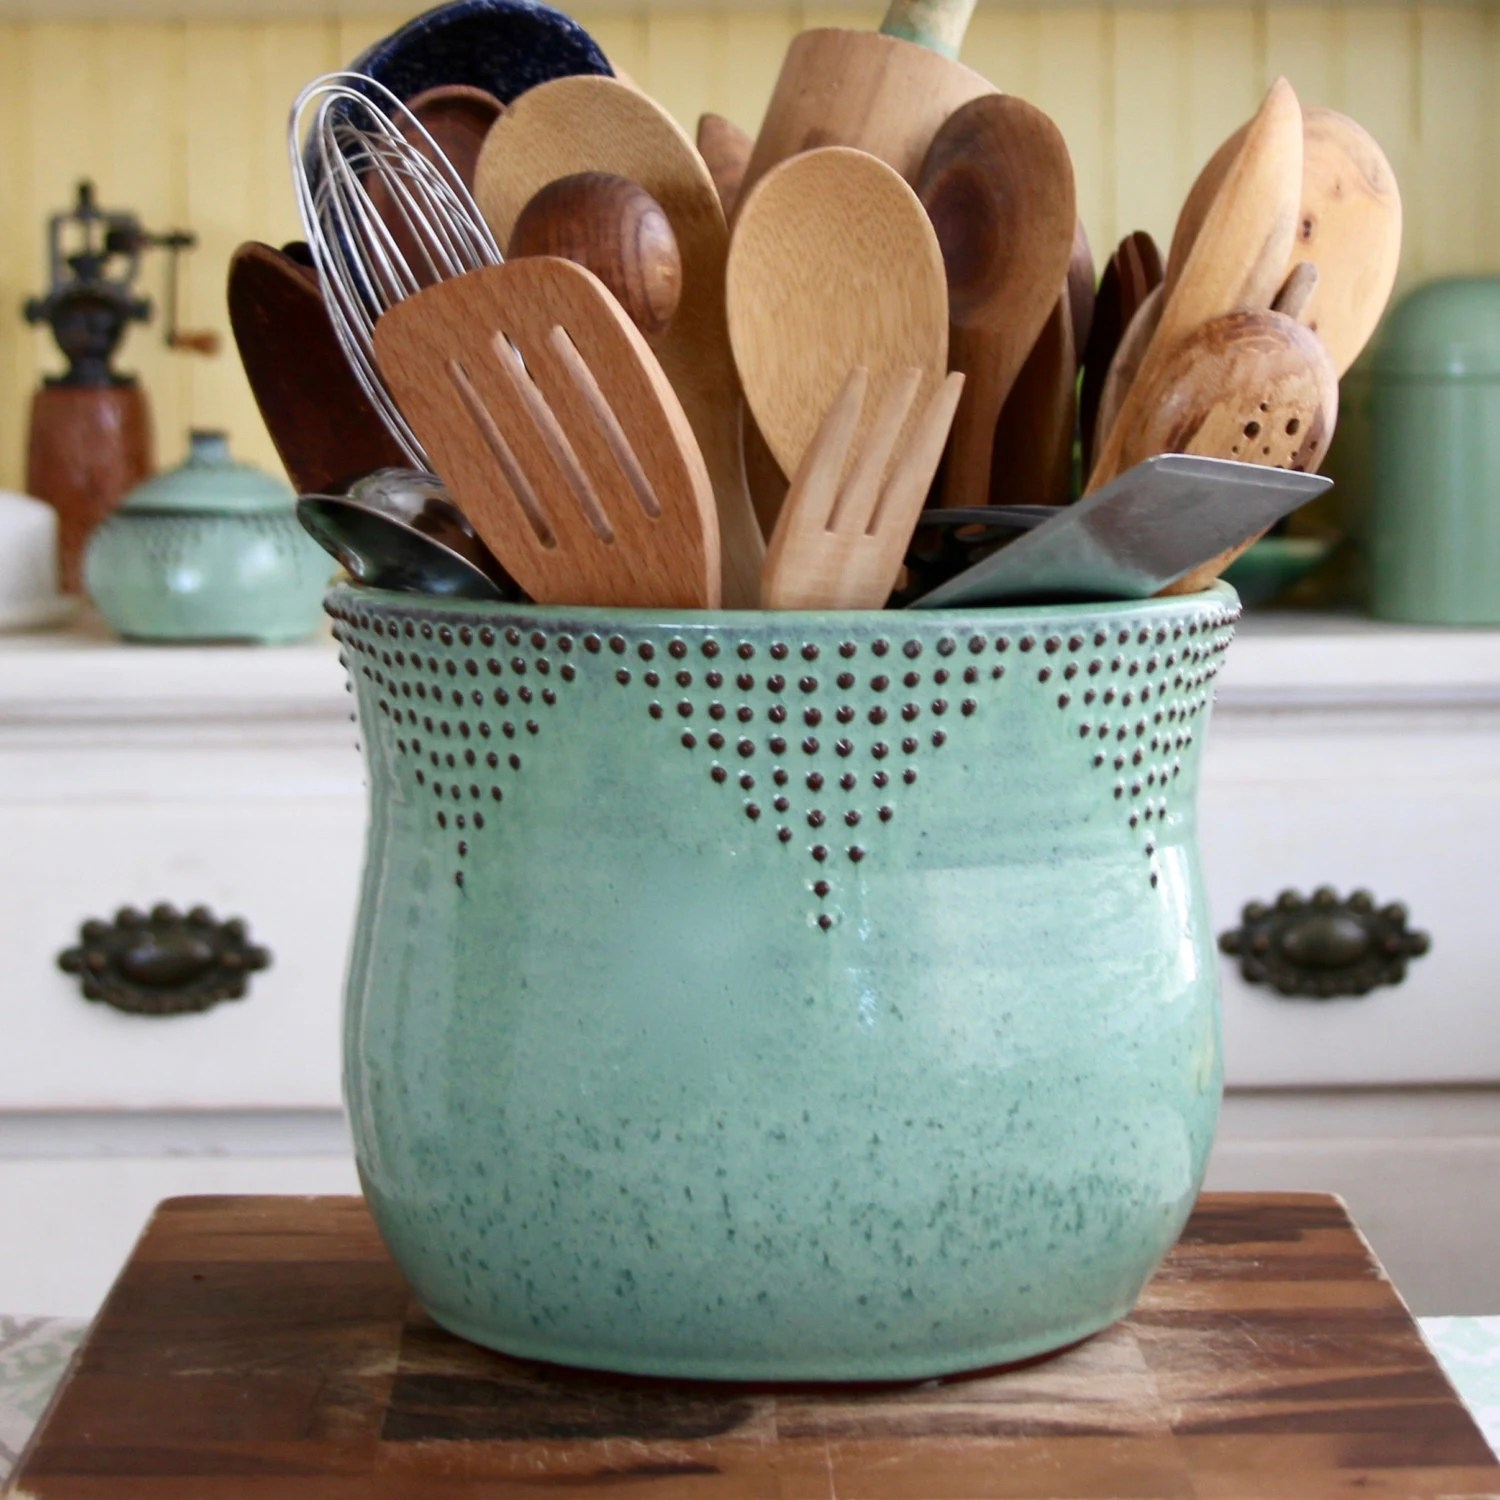 Rustic Utensil Crock Jumbo Utensil Holder Aqua Mist Flower Pot Kitchen Decor